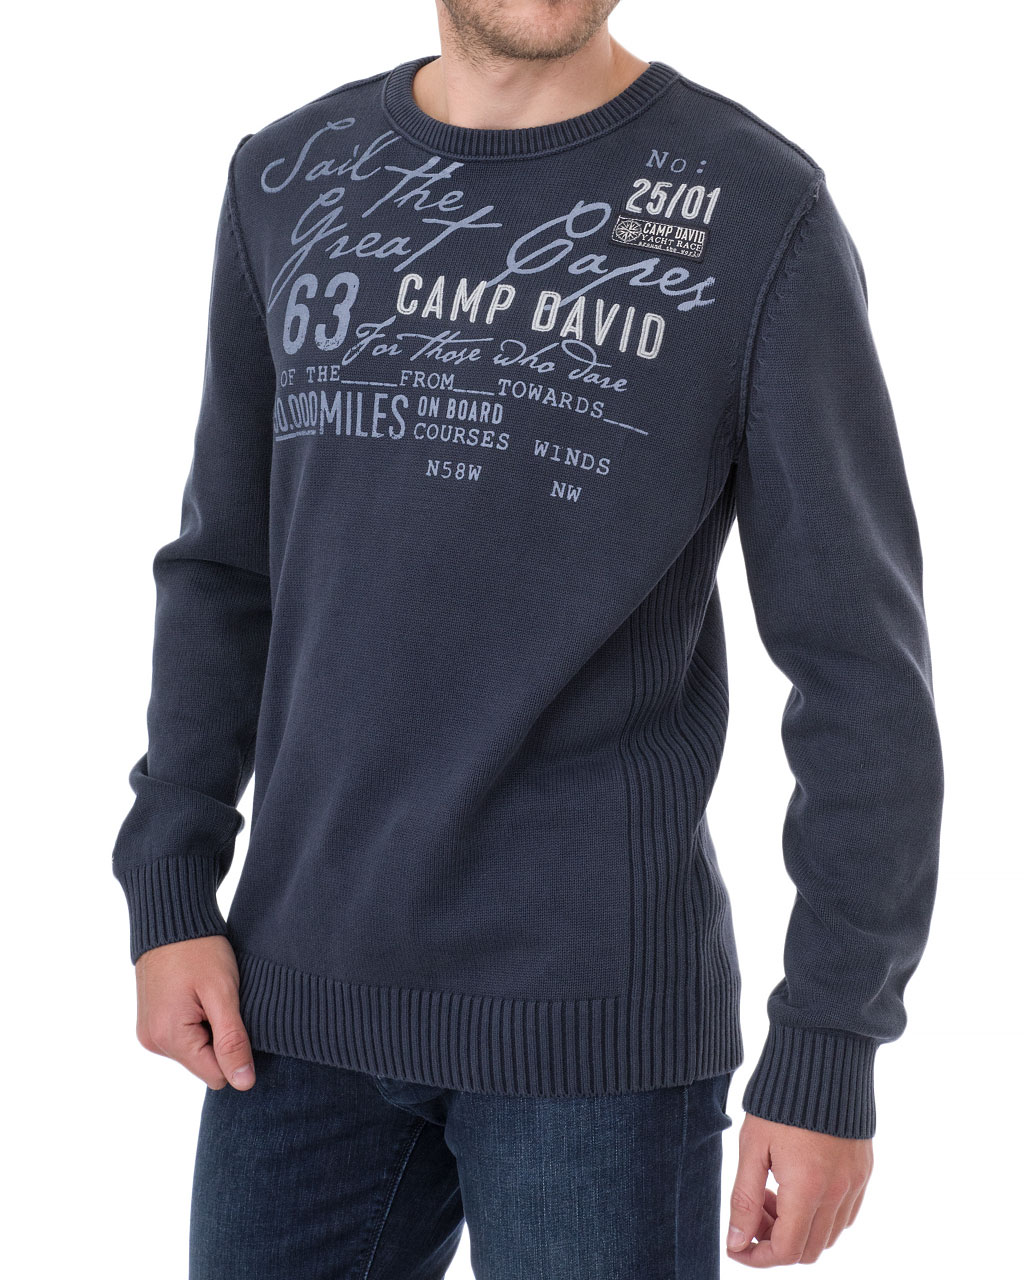 Men's jumper 1809-4770/8-92-синий (3)